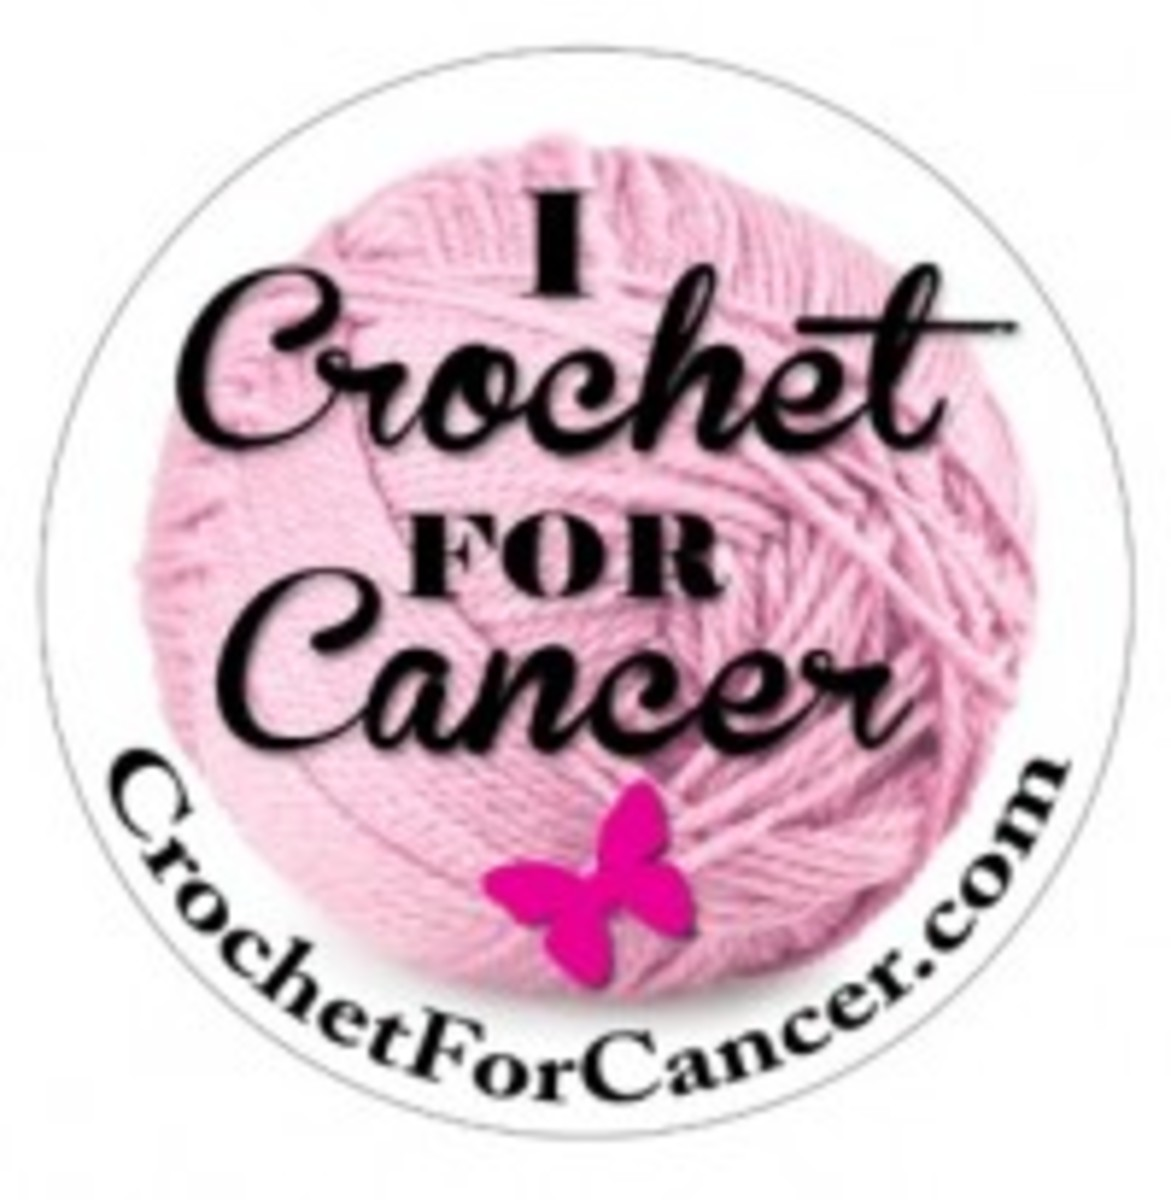 Crocheting For A Cause : Crochet For a Cause